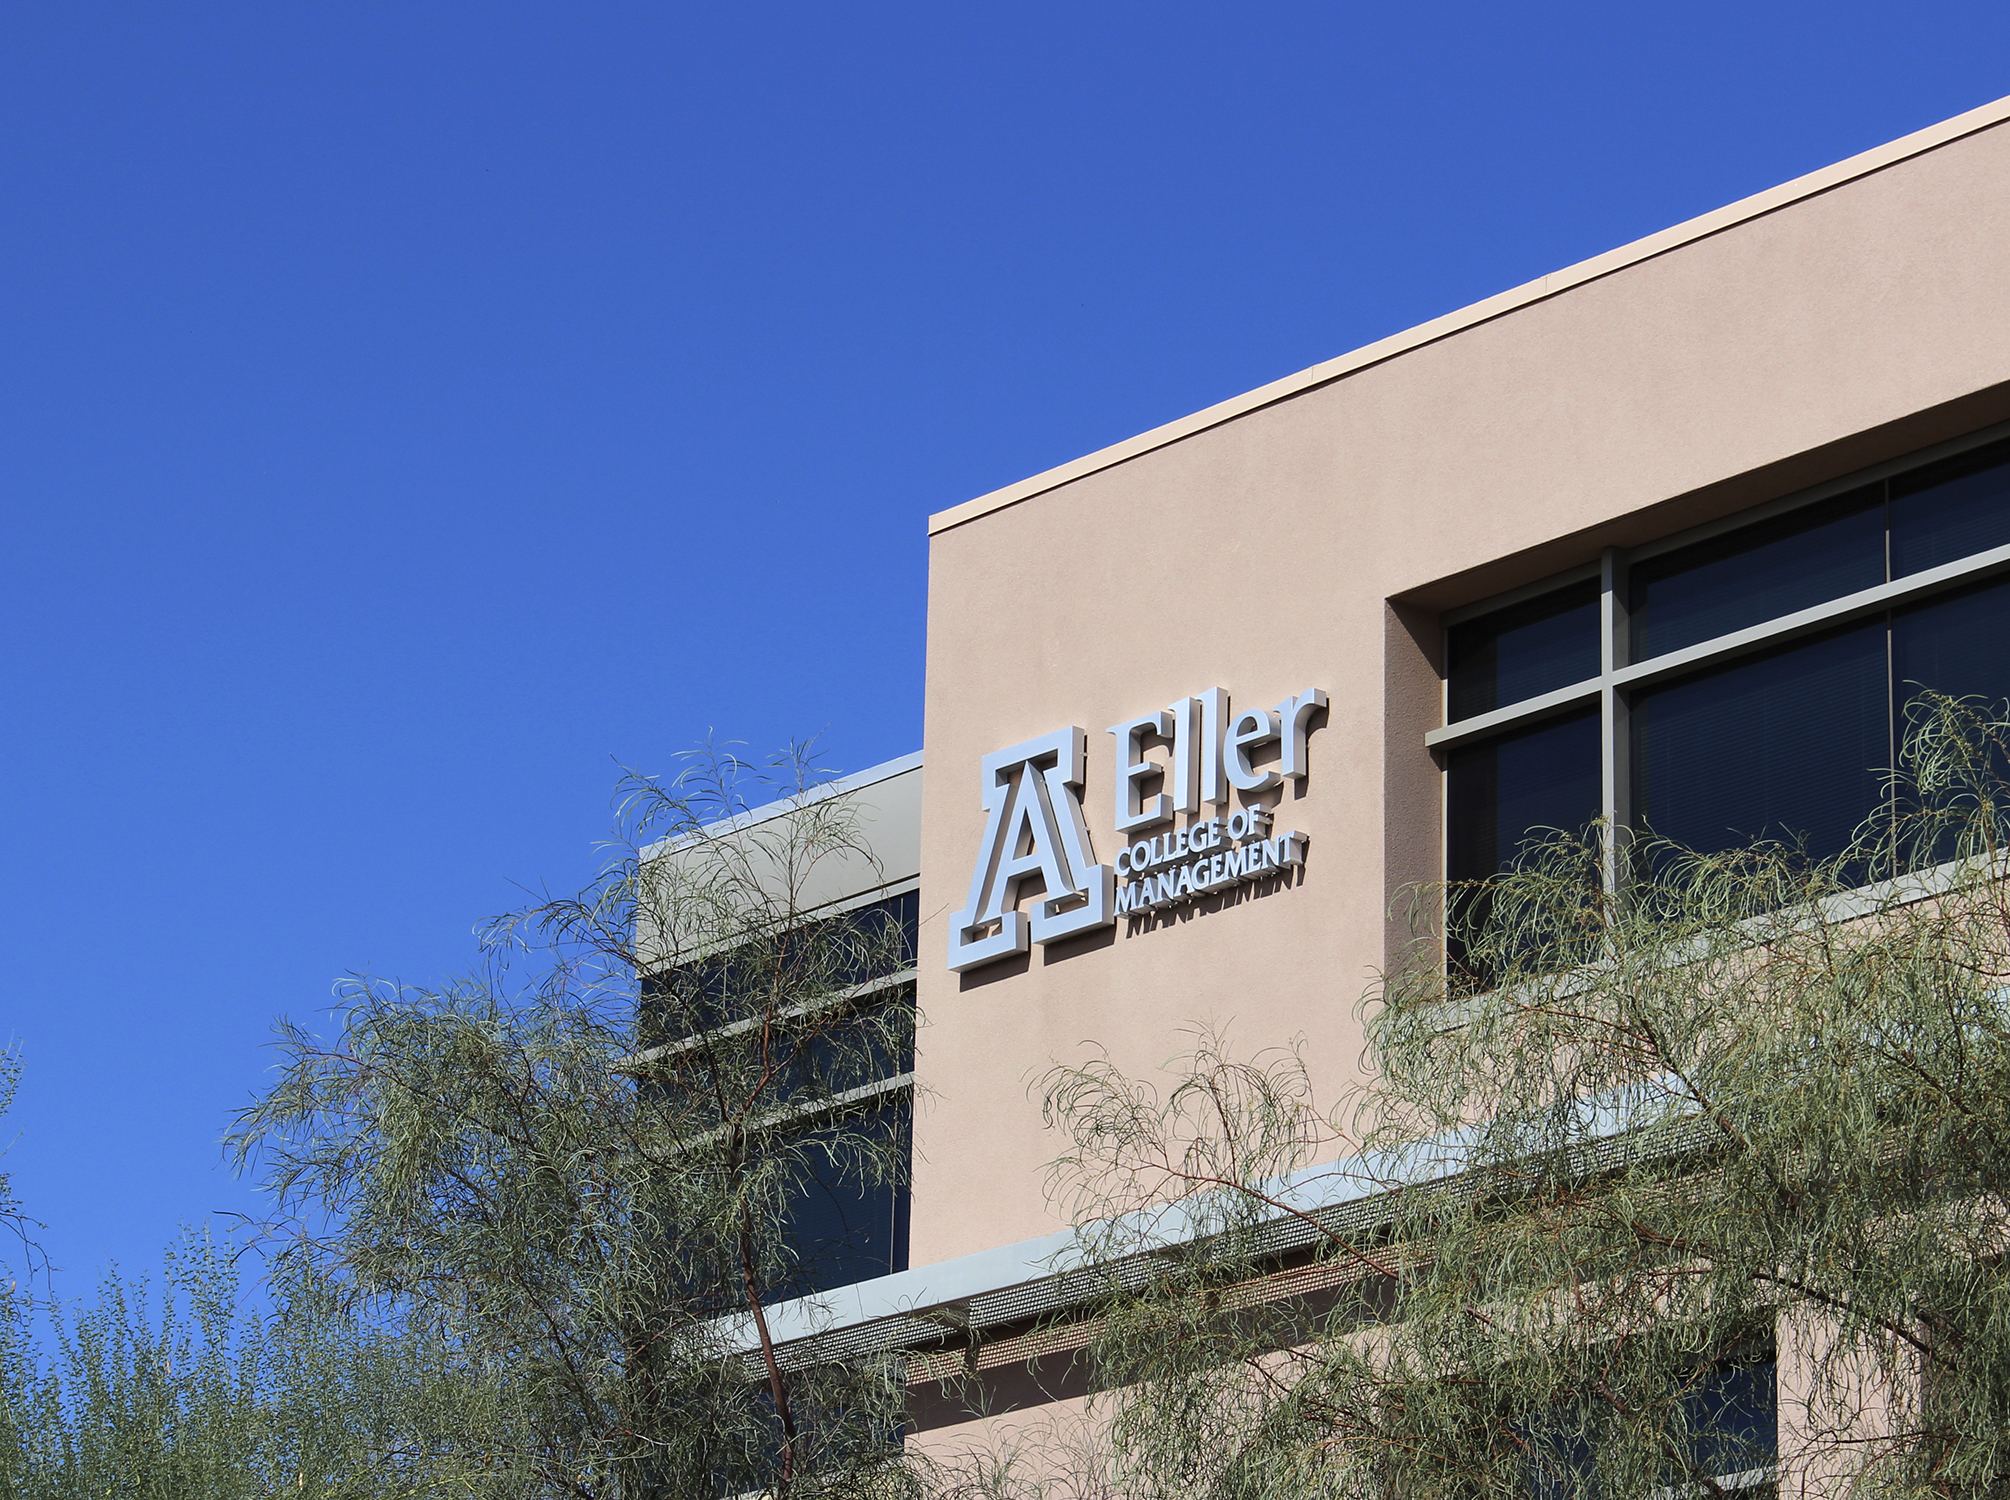 The halo-lit letters and logo are built from brushed aluminum.